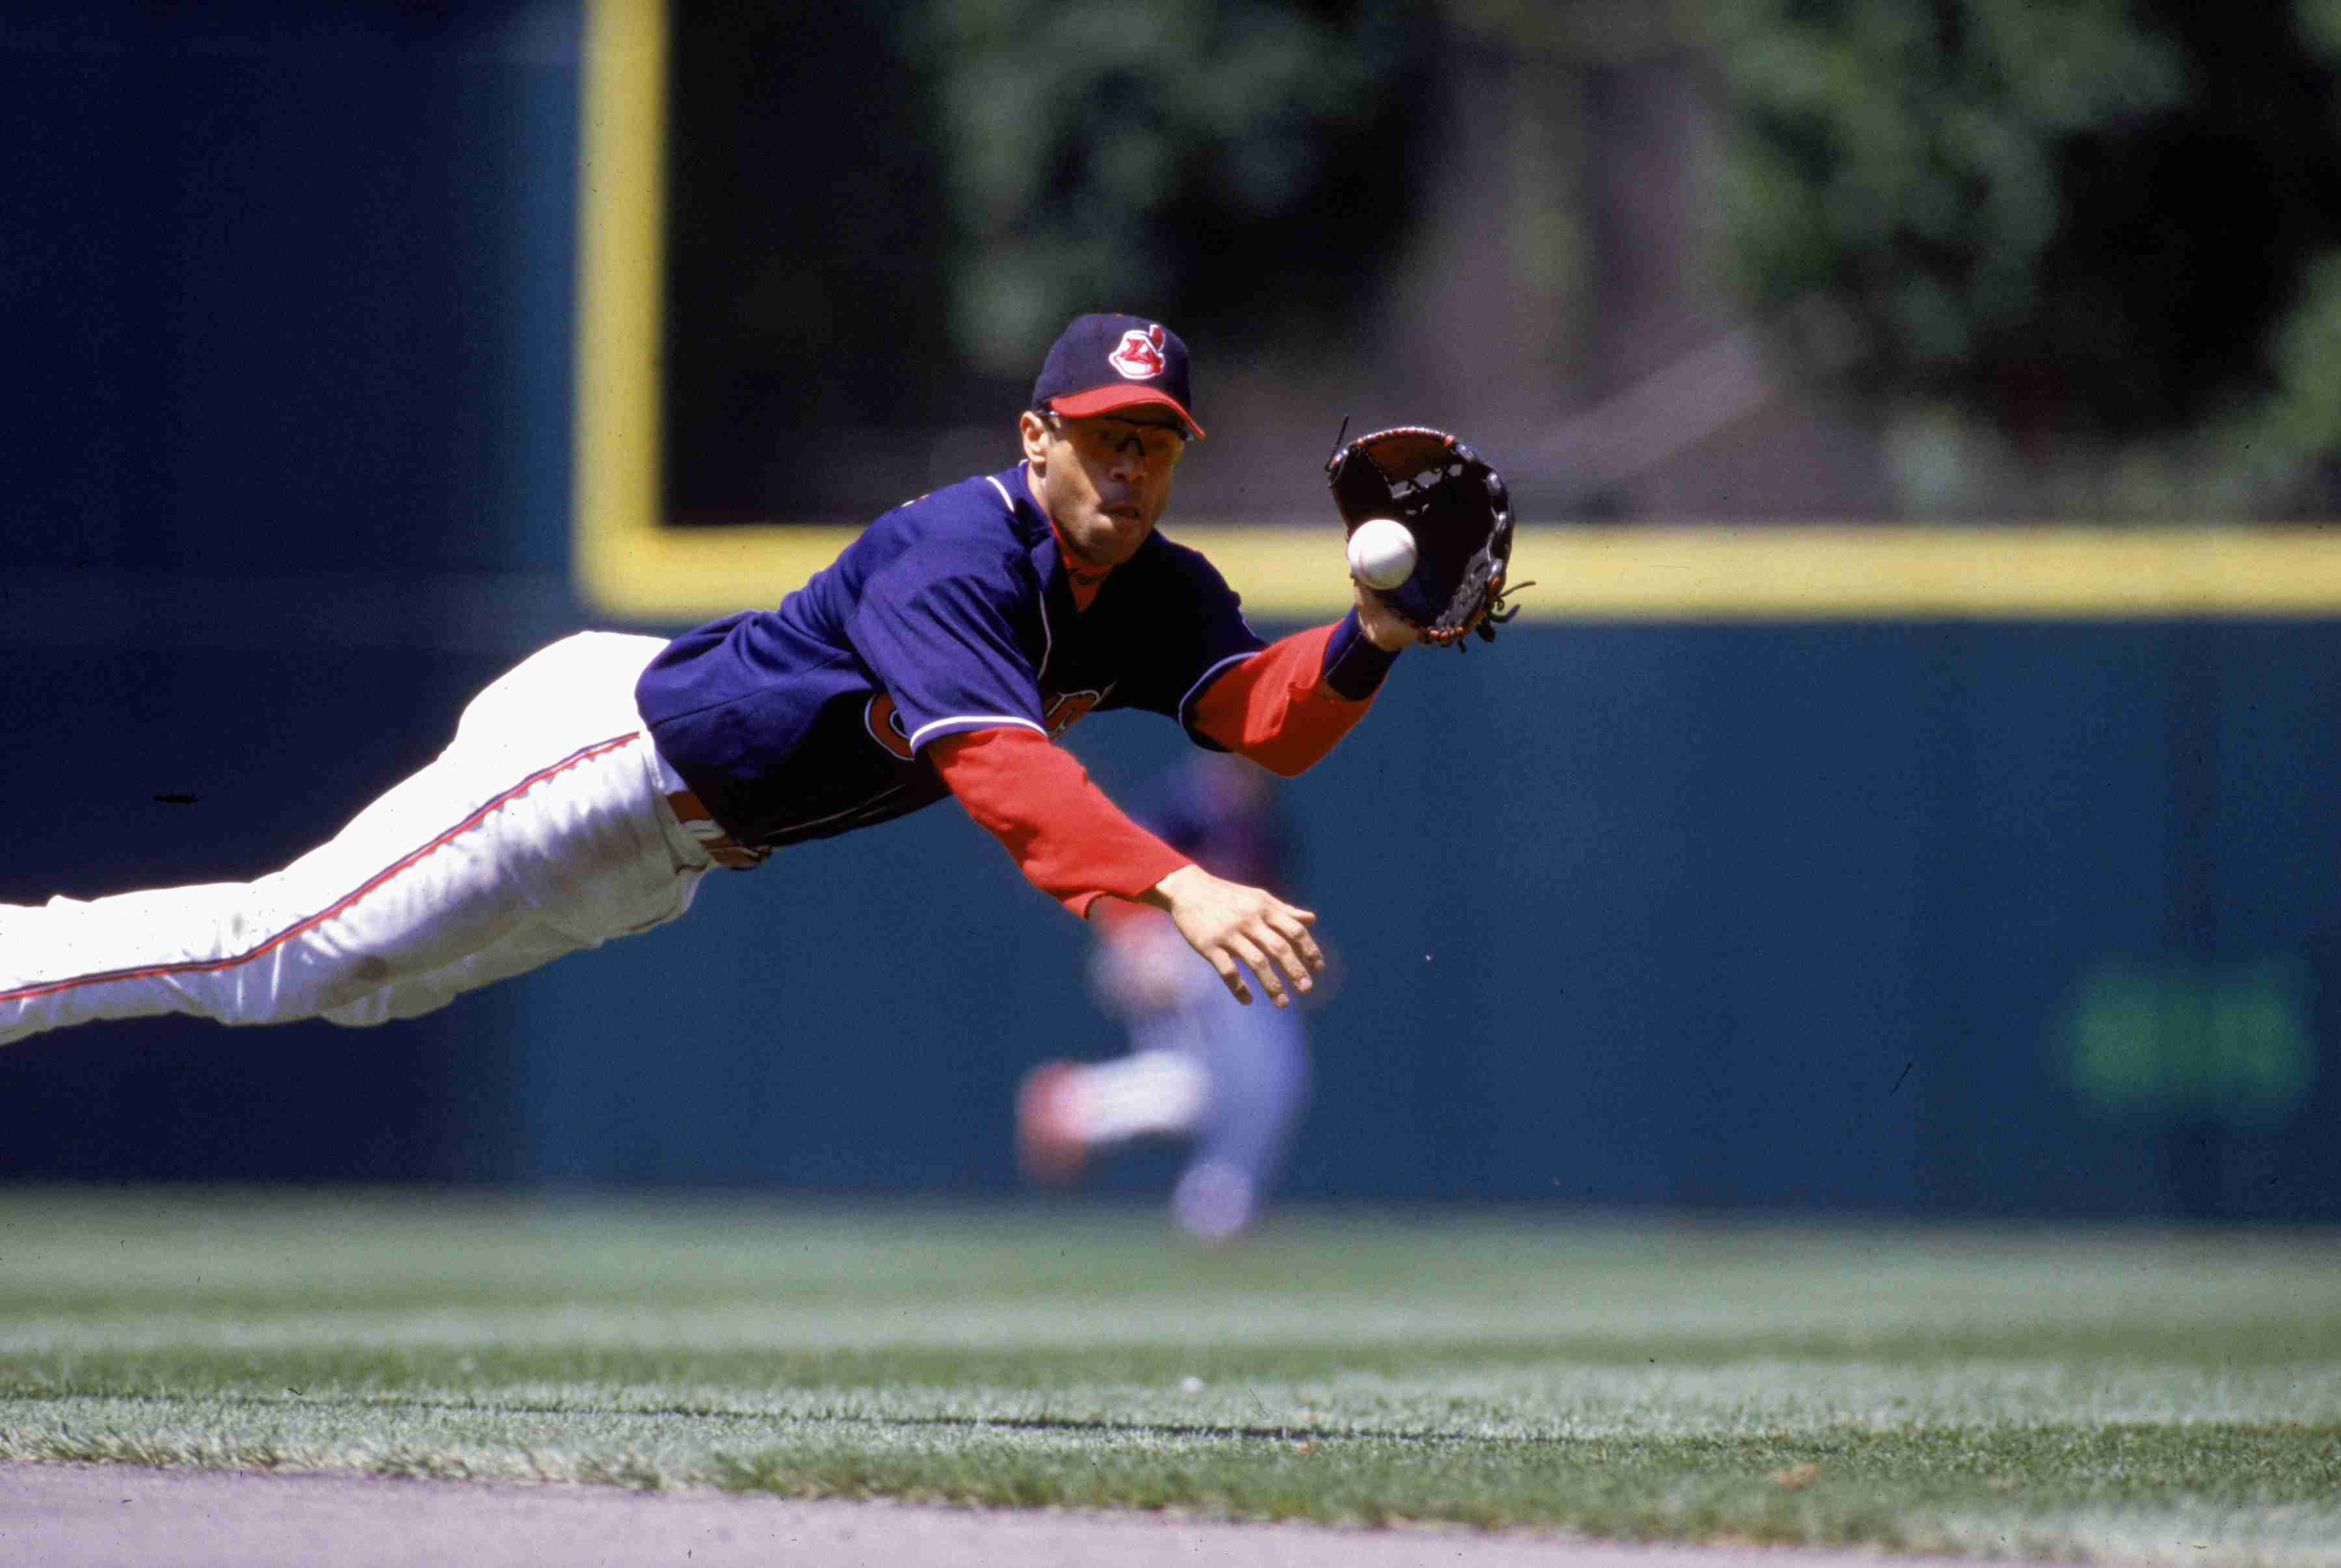 CLEVELAND - 2000: Roberto Alomar of the Cleveland Indians dives for a ball during an MLB game at Jacobs Field in Cleveland, Ohio.